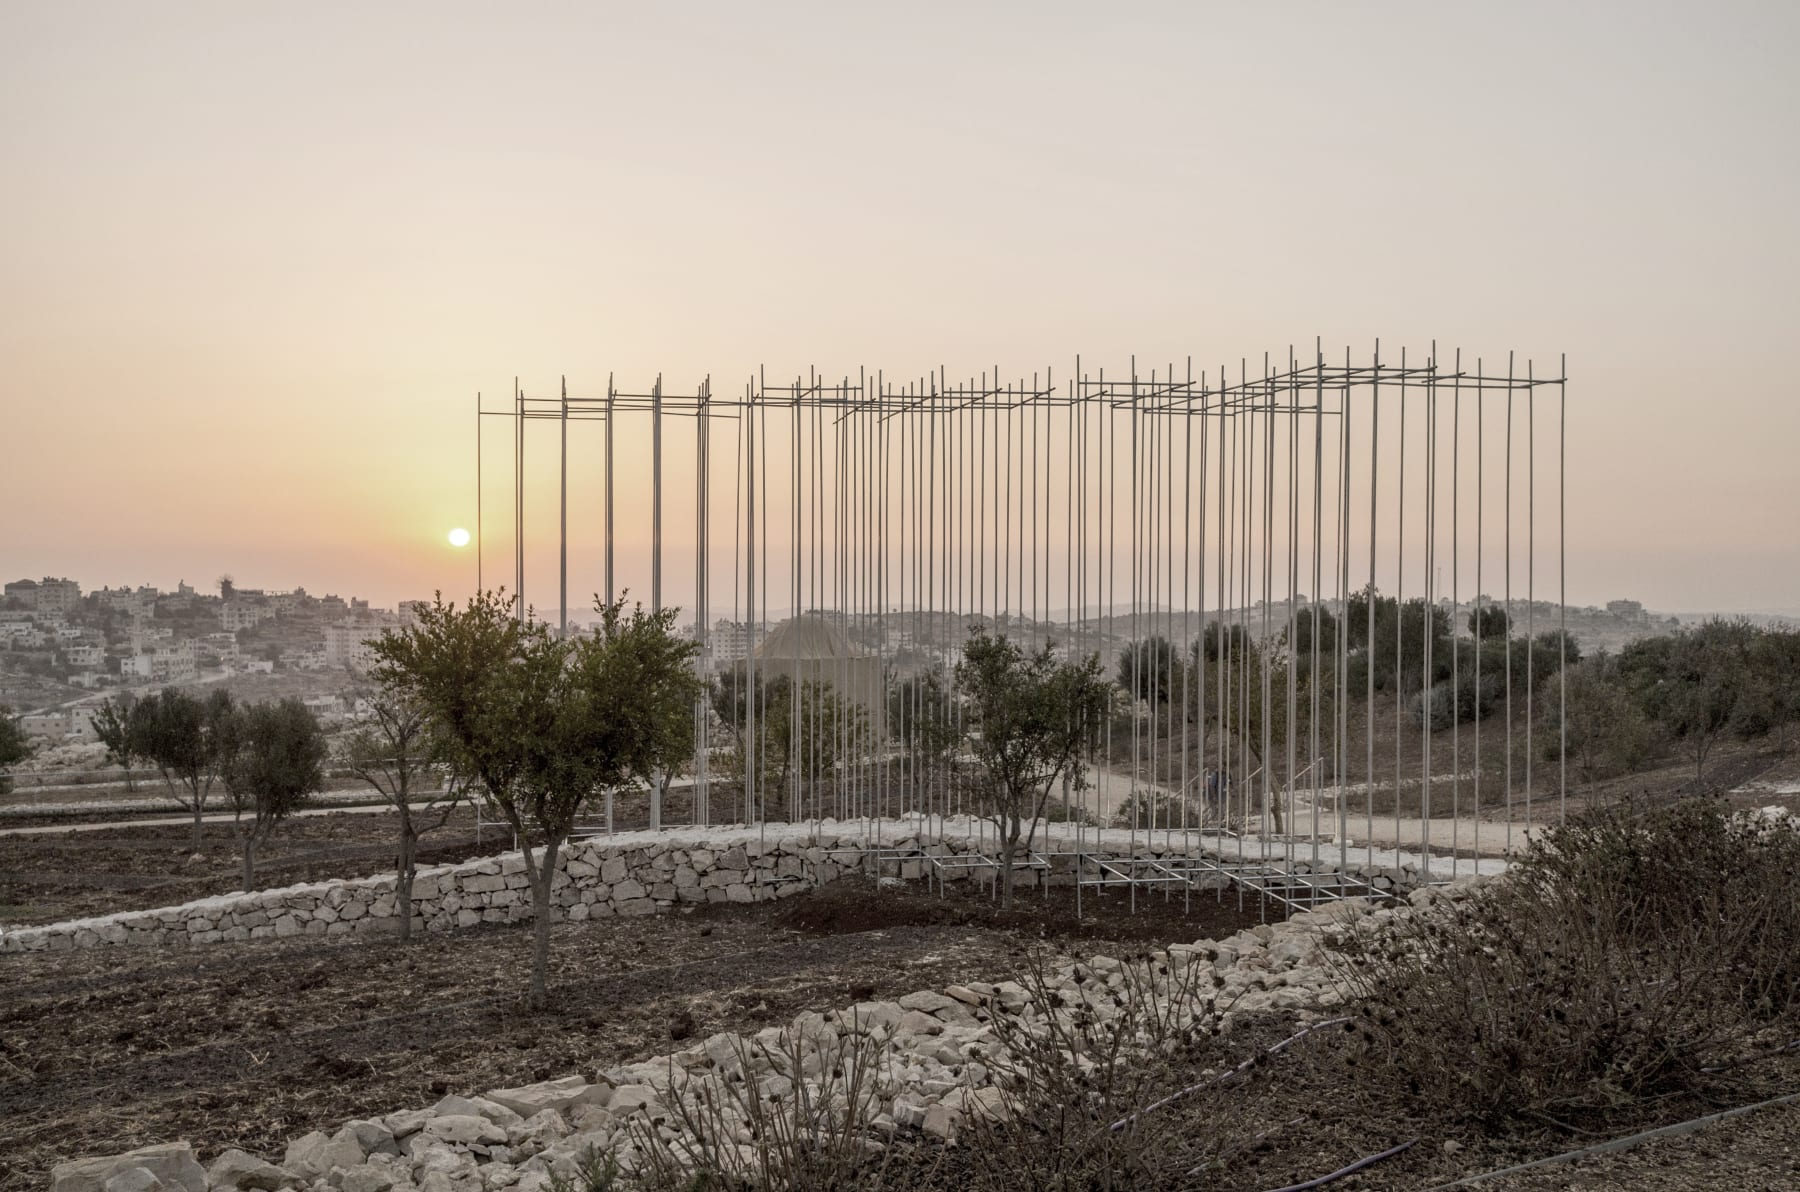 Threshold, 2017 The Palestinian Museum, Birzeit Collaboration with Eric Chen, Curated by Reem Fadda. Images courtesy of Rain Wu